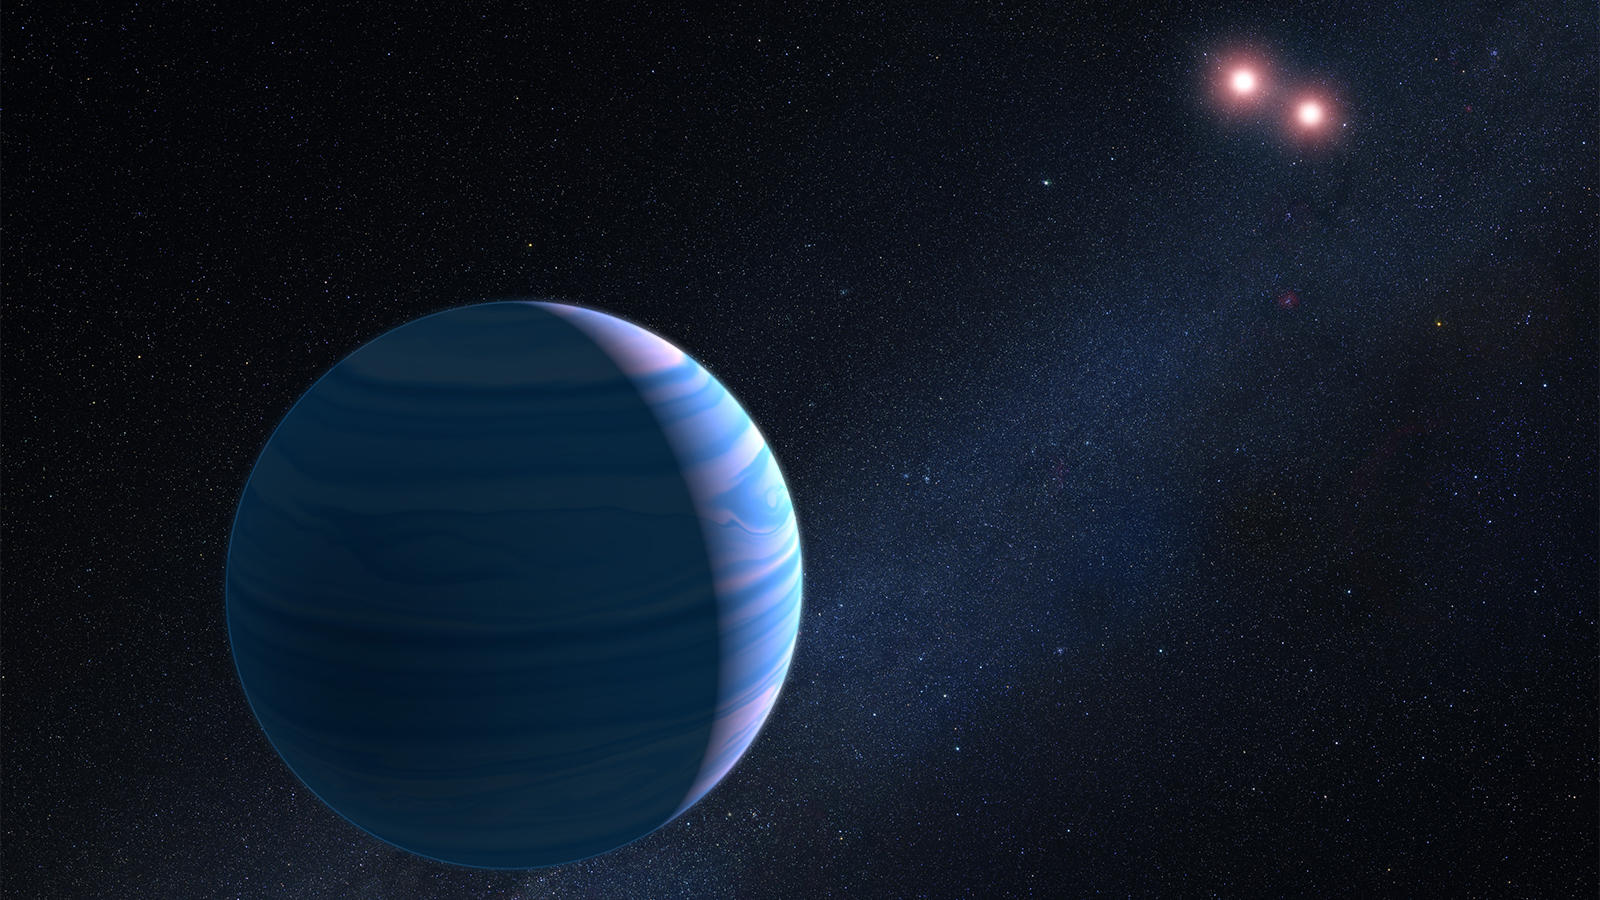 slide 5 - An artist's illustration shows a gas giant planet circling a pair of red dwarf stars.